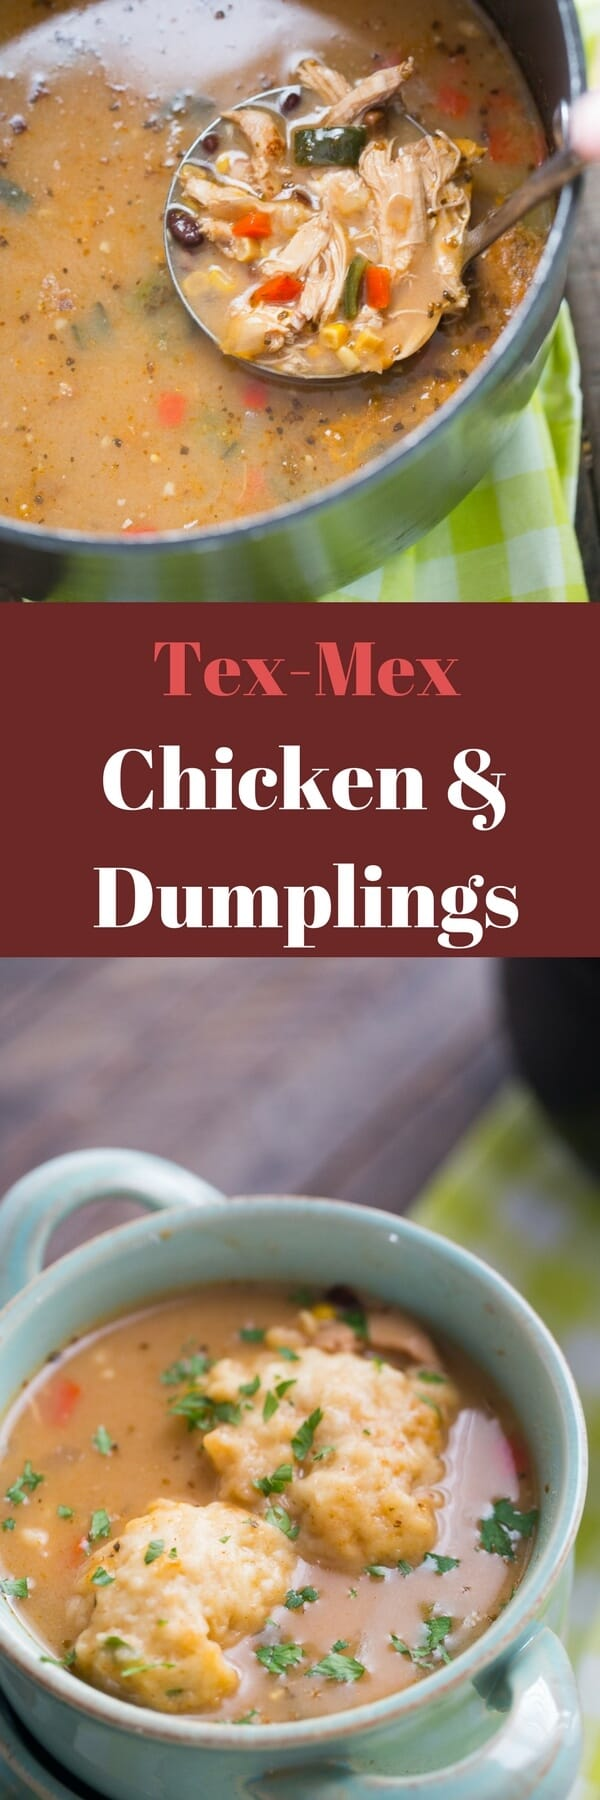 This chicken and dumplings recipe gets a Tex-Mex update! You are going to love the bold flavor from the spies and the veggies! This soup satisfies the belly and the soul!